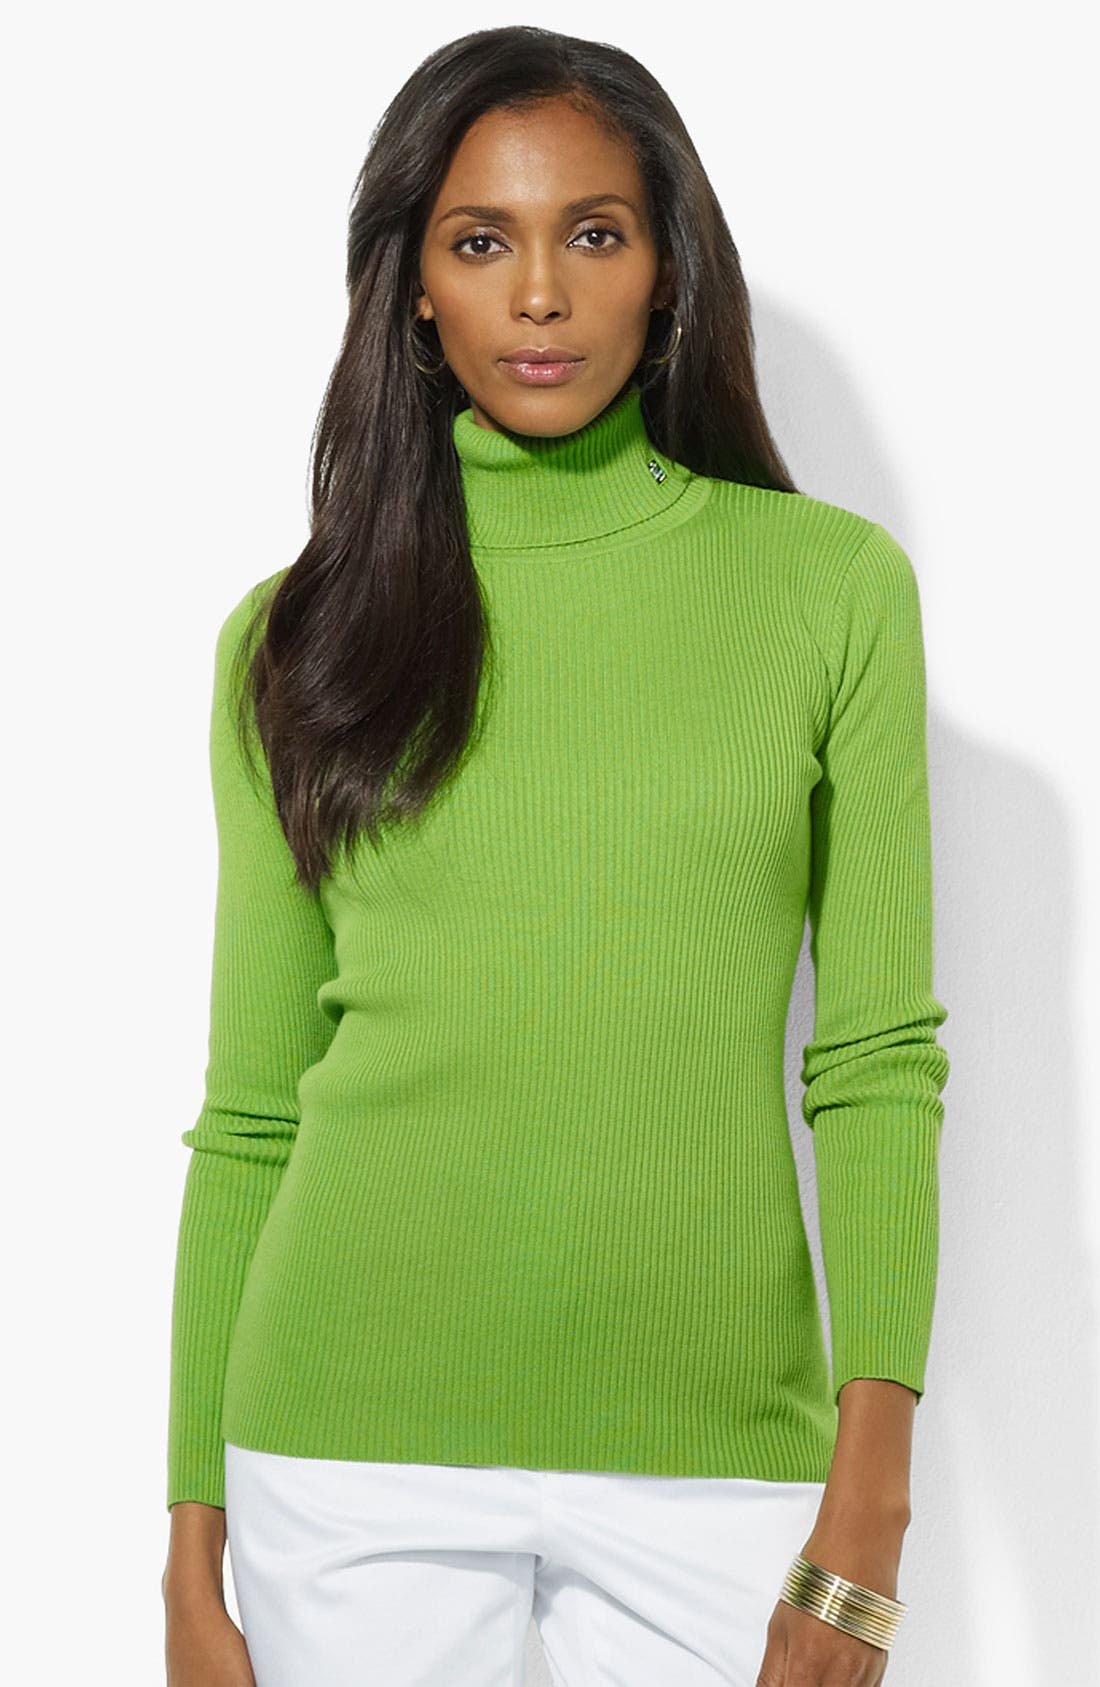 Alternate Image 1 Selected - Lauren Ralph Lauren Turtleneck (Petite) (Online Only)